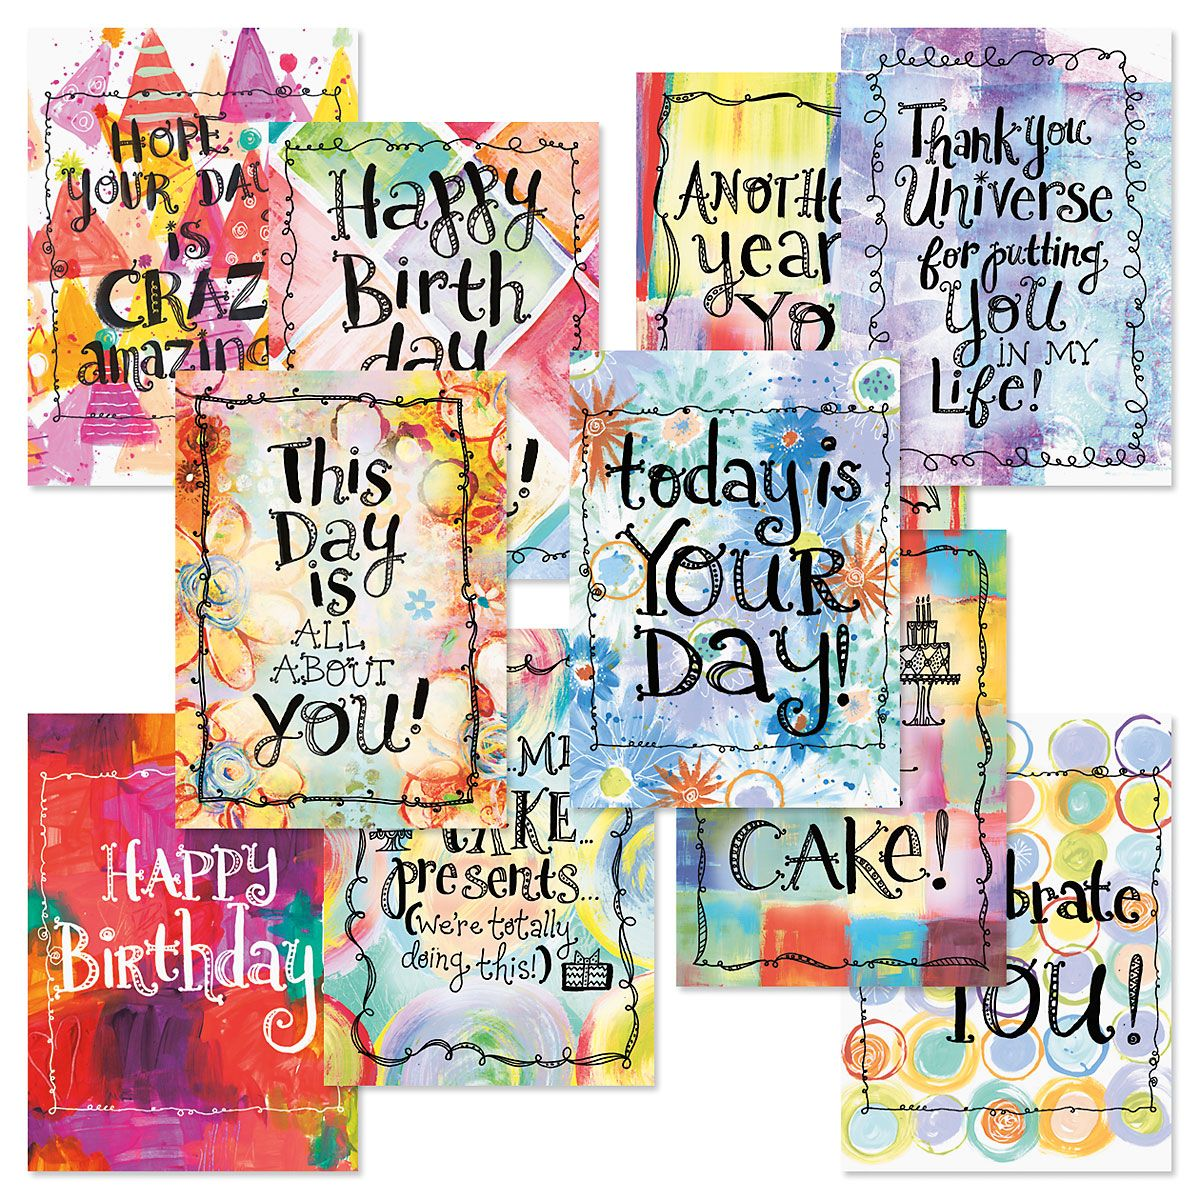 Enticing Crazy Birthday Cards Value Pack Greeting Card Value Discount Cards Current Catalog Standard Greeting Card Size Chart Uk Standard Greeting Card Size Australia Post cards Standard Greeting Card Size